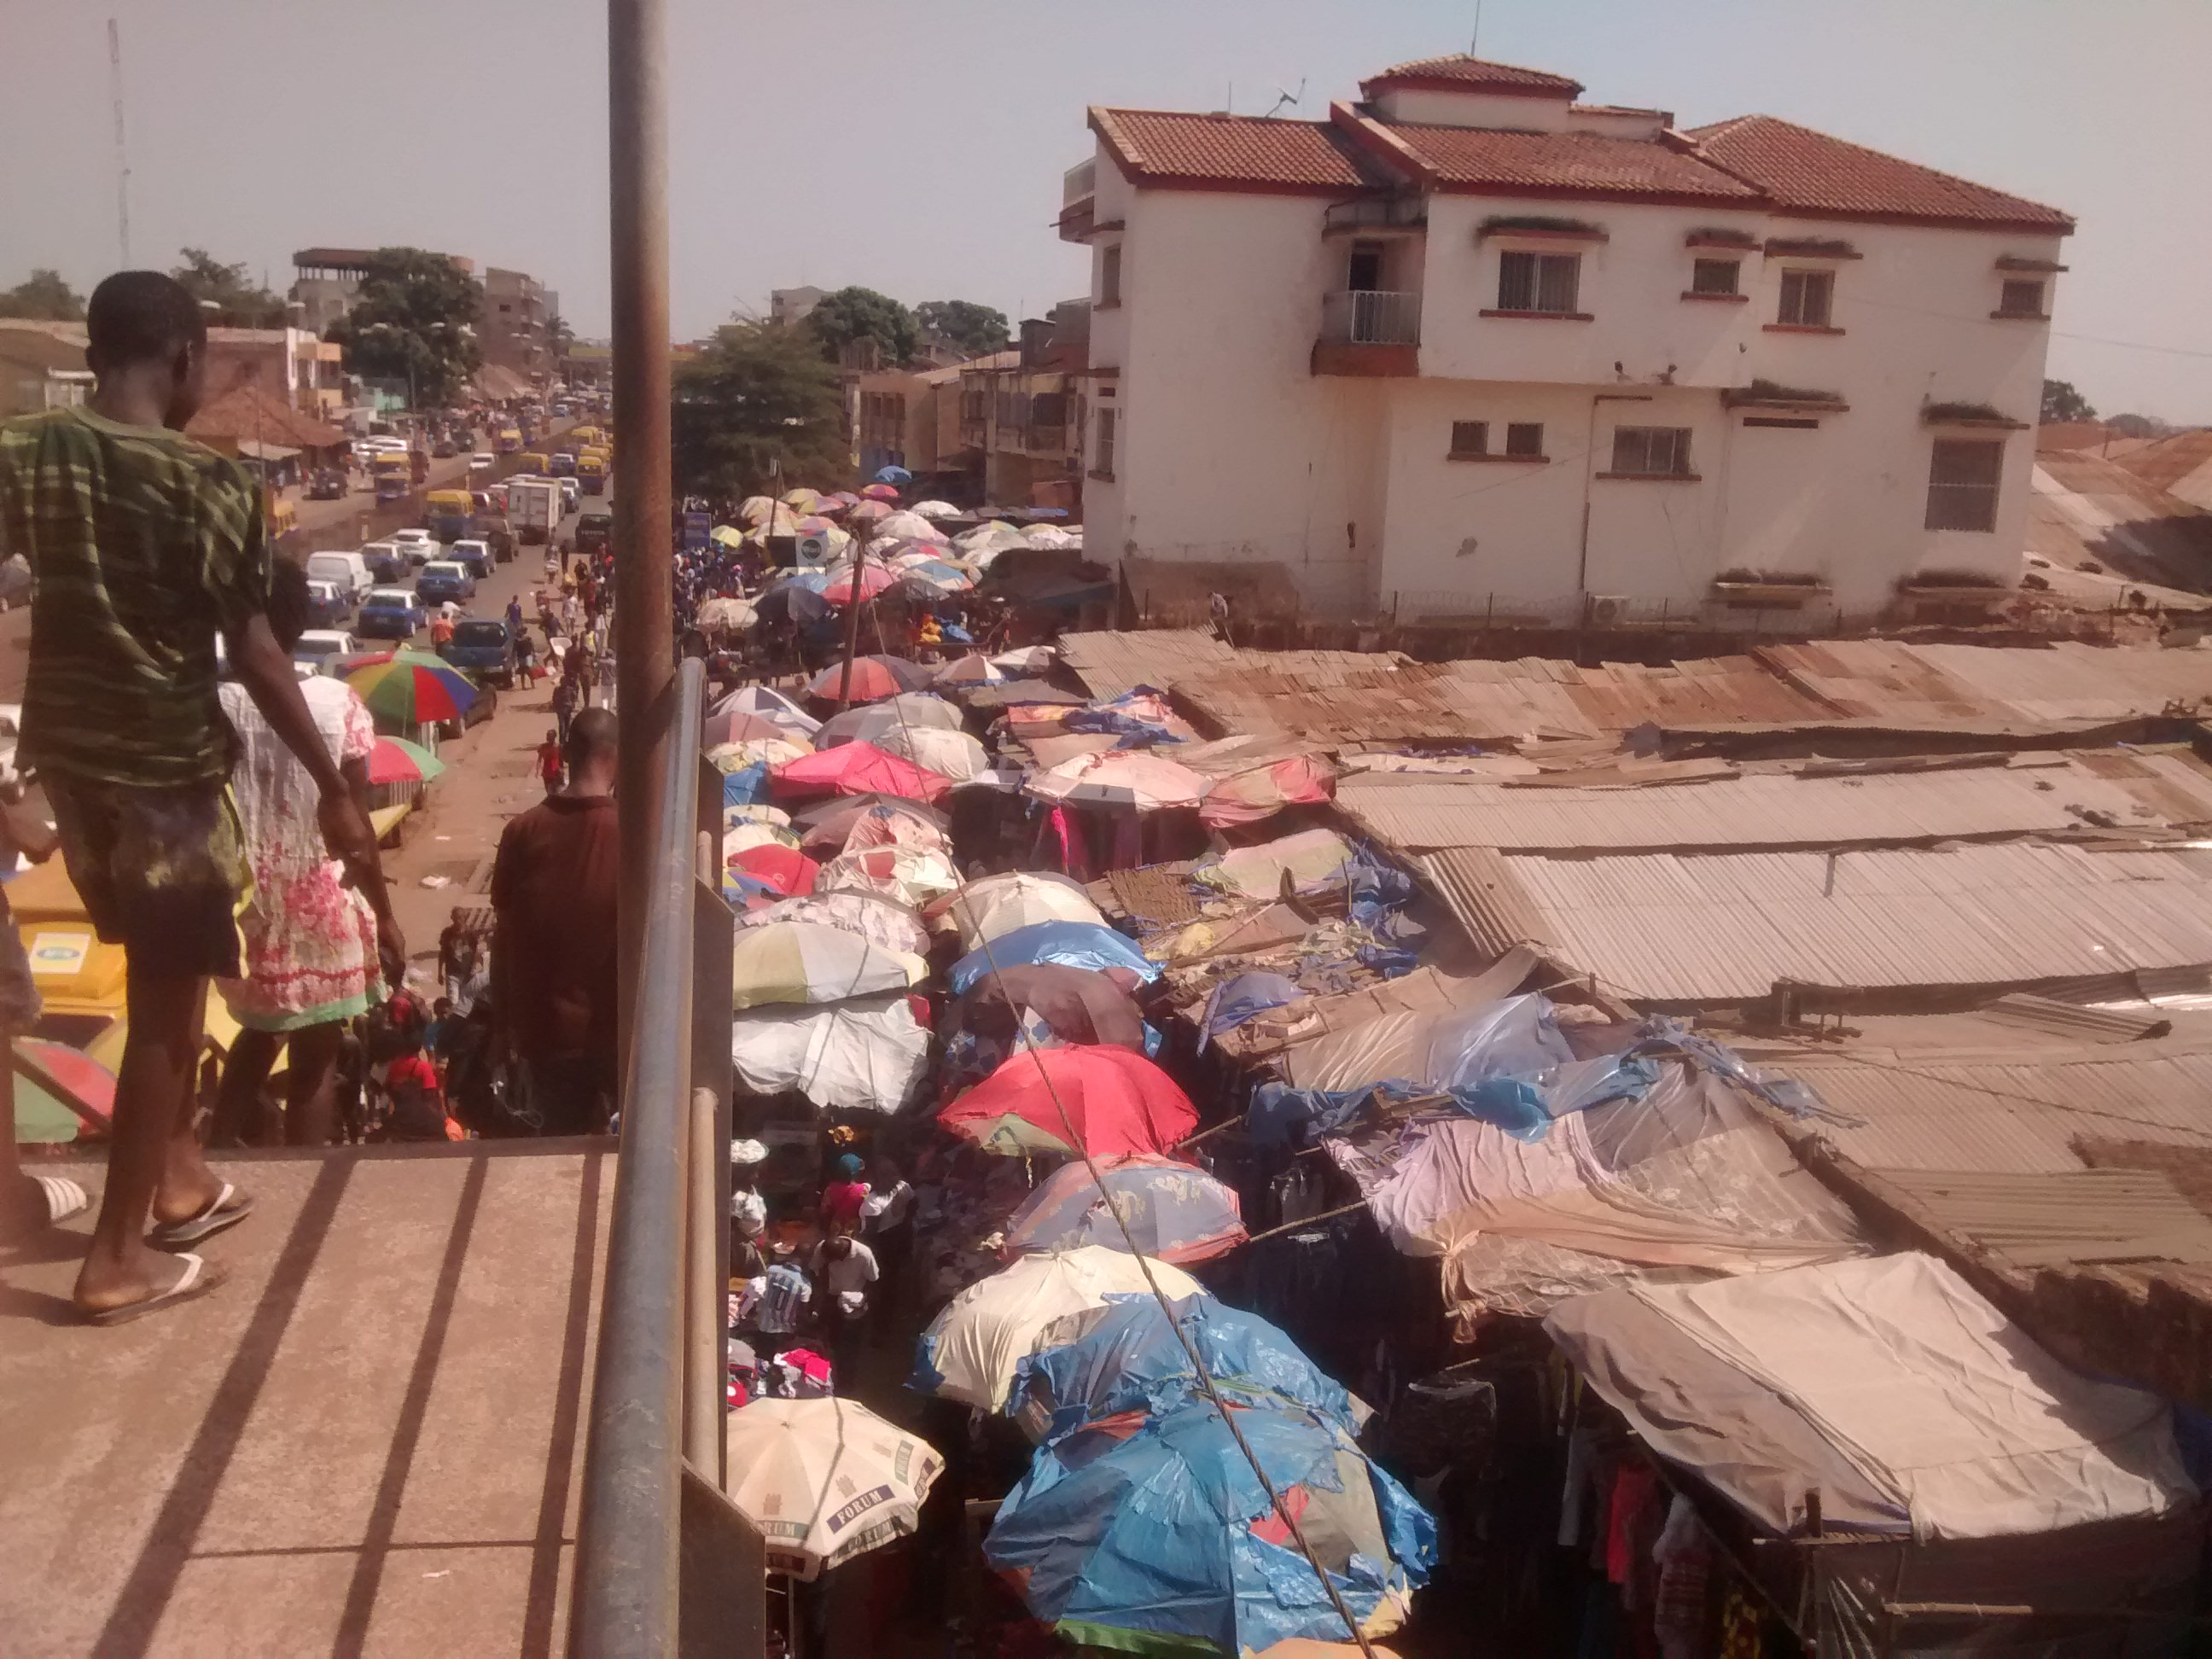 Market sprawling away from main road under corrugated roofing in Bissau, Guinea-Bissau.